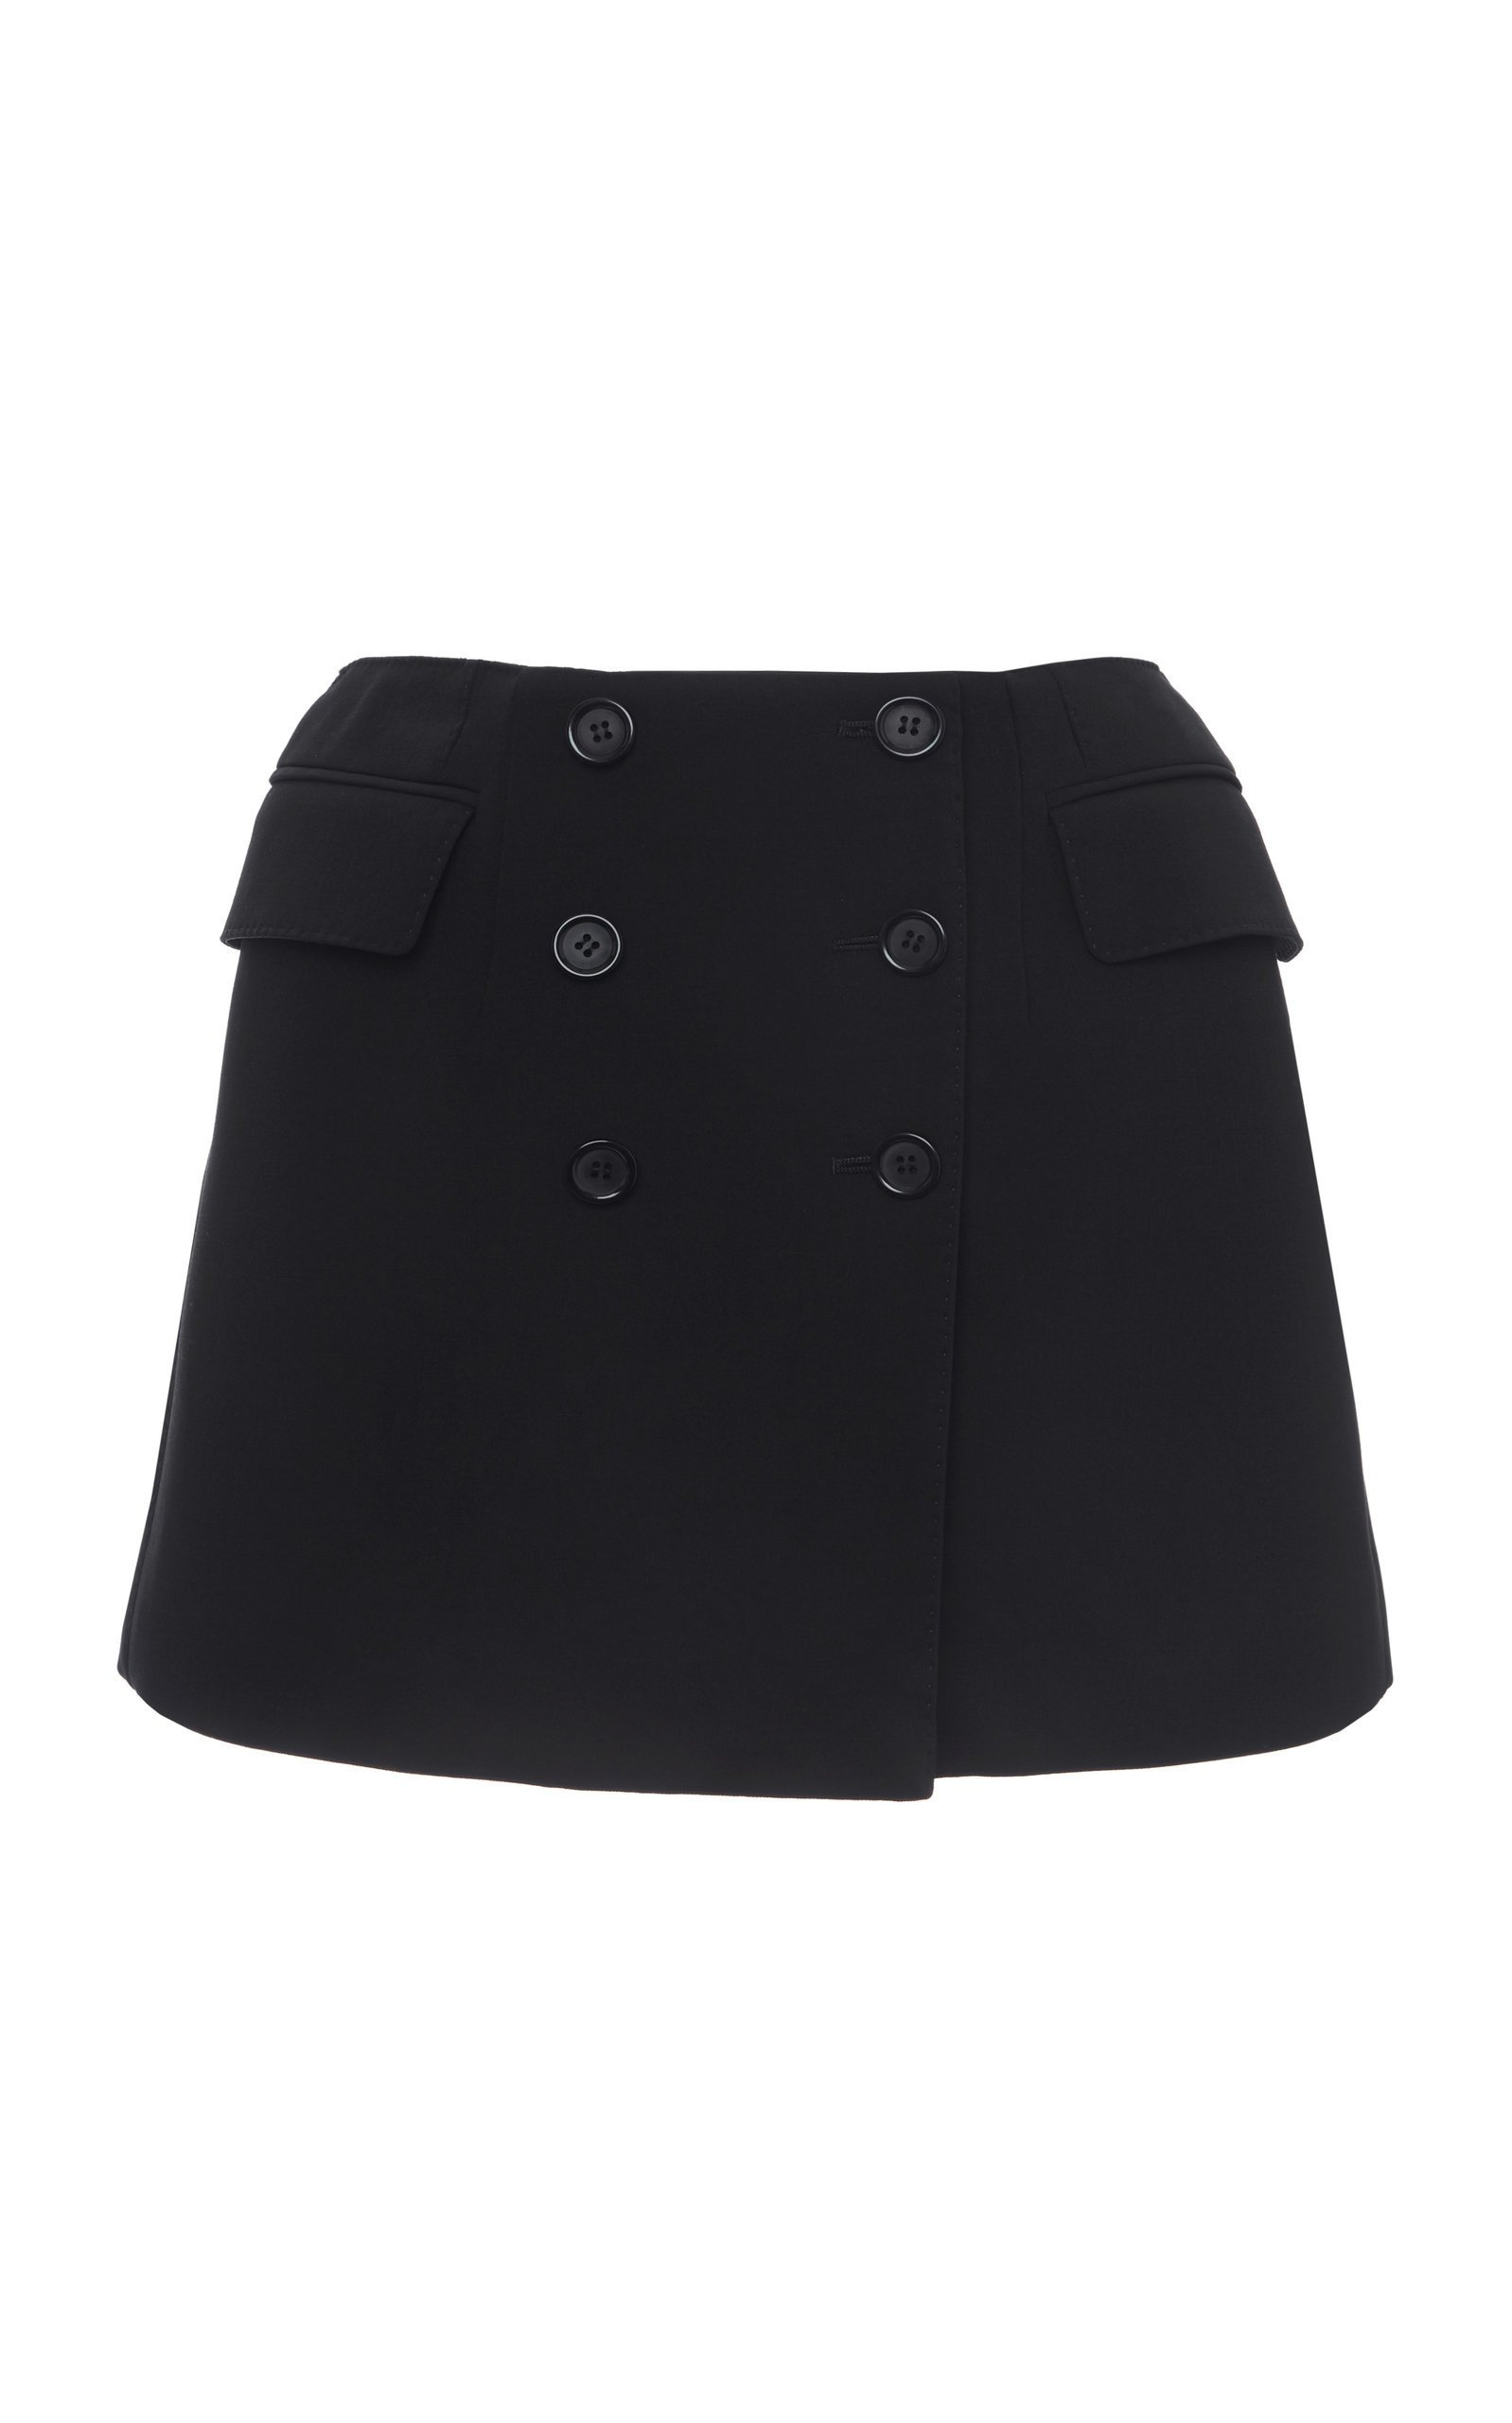 Dolce & Gabbana Wool Mini Skirt Size: 38